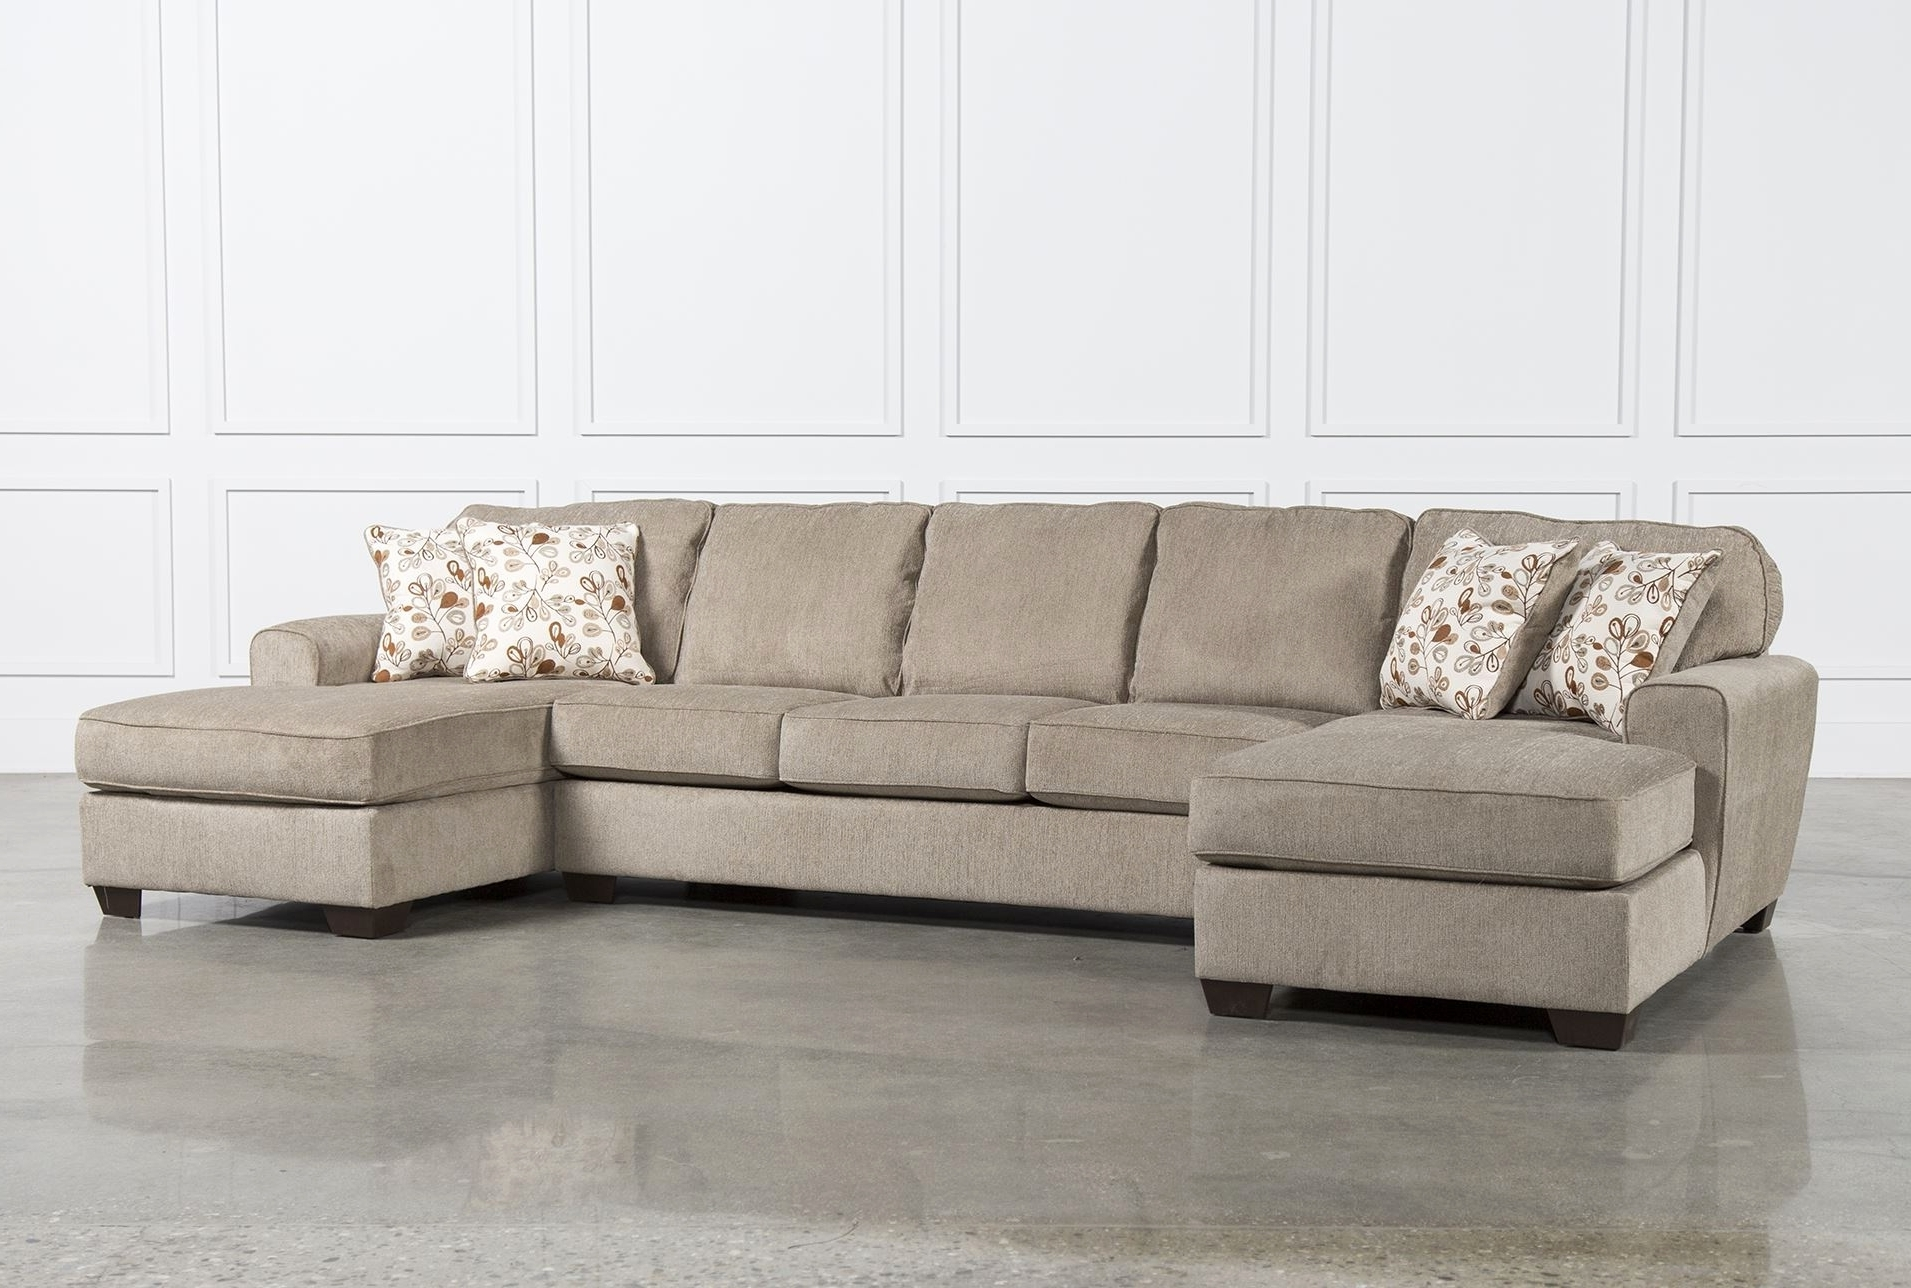 2 Piece Sectionals With Chaise Lounge Inside Most Popular Inspirational Sofa With 2 Chaise Lounge 2018 – Couches Ideas (View 1 of 15)